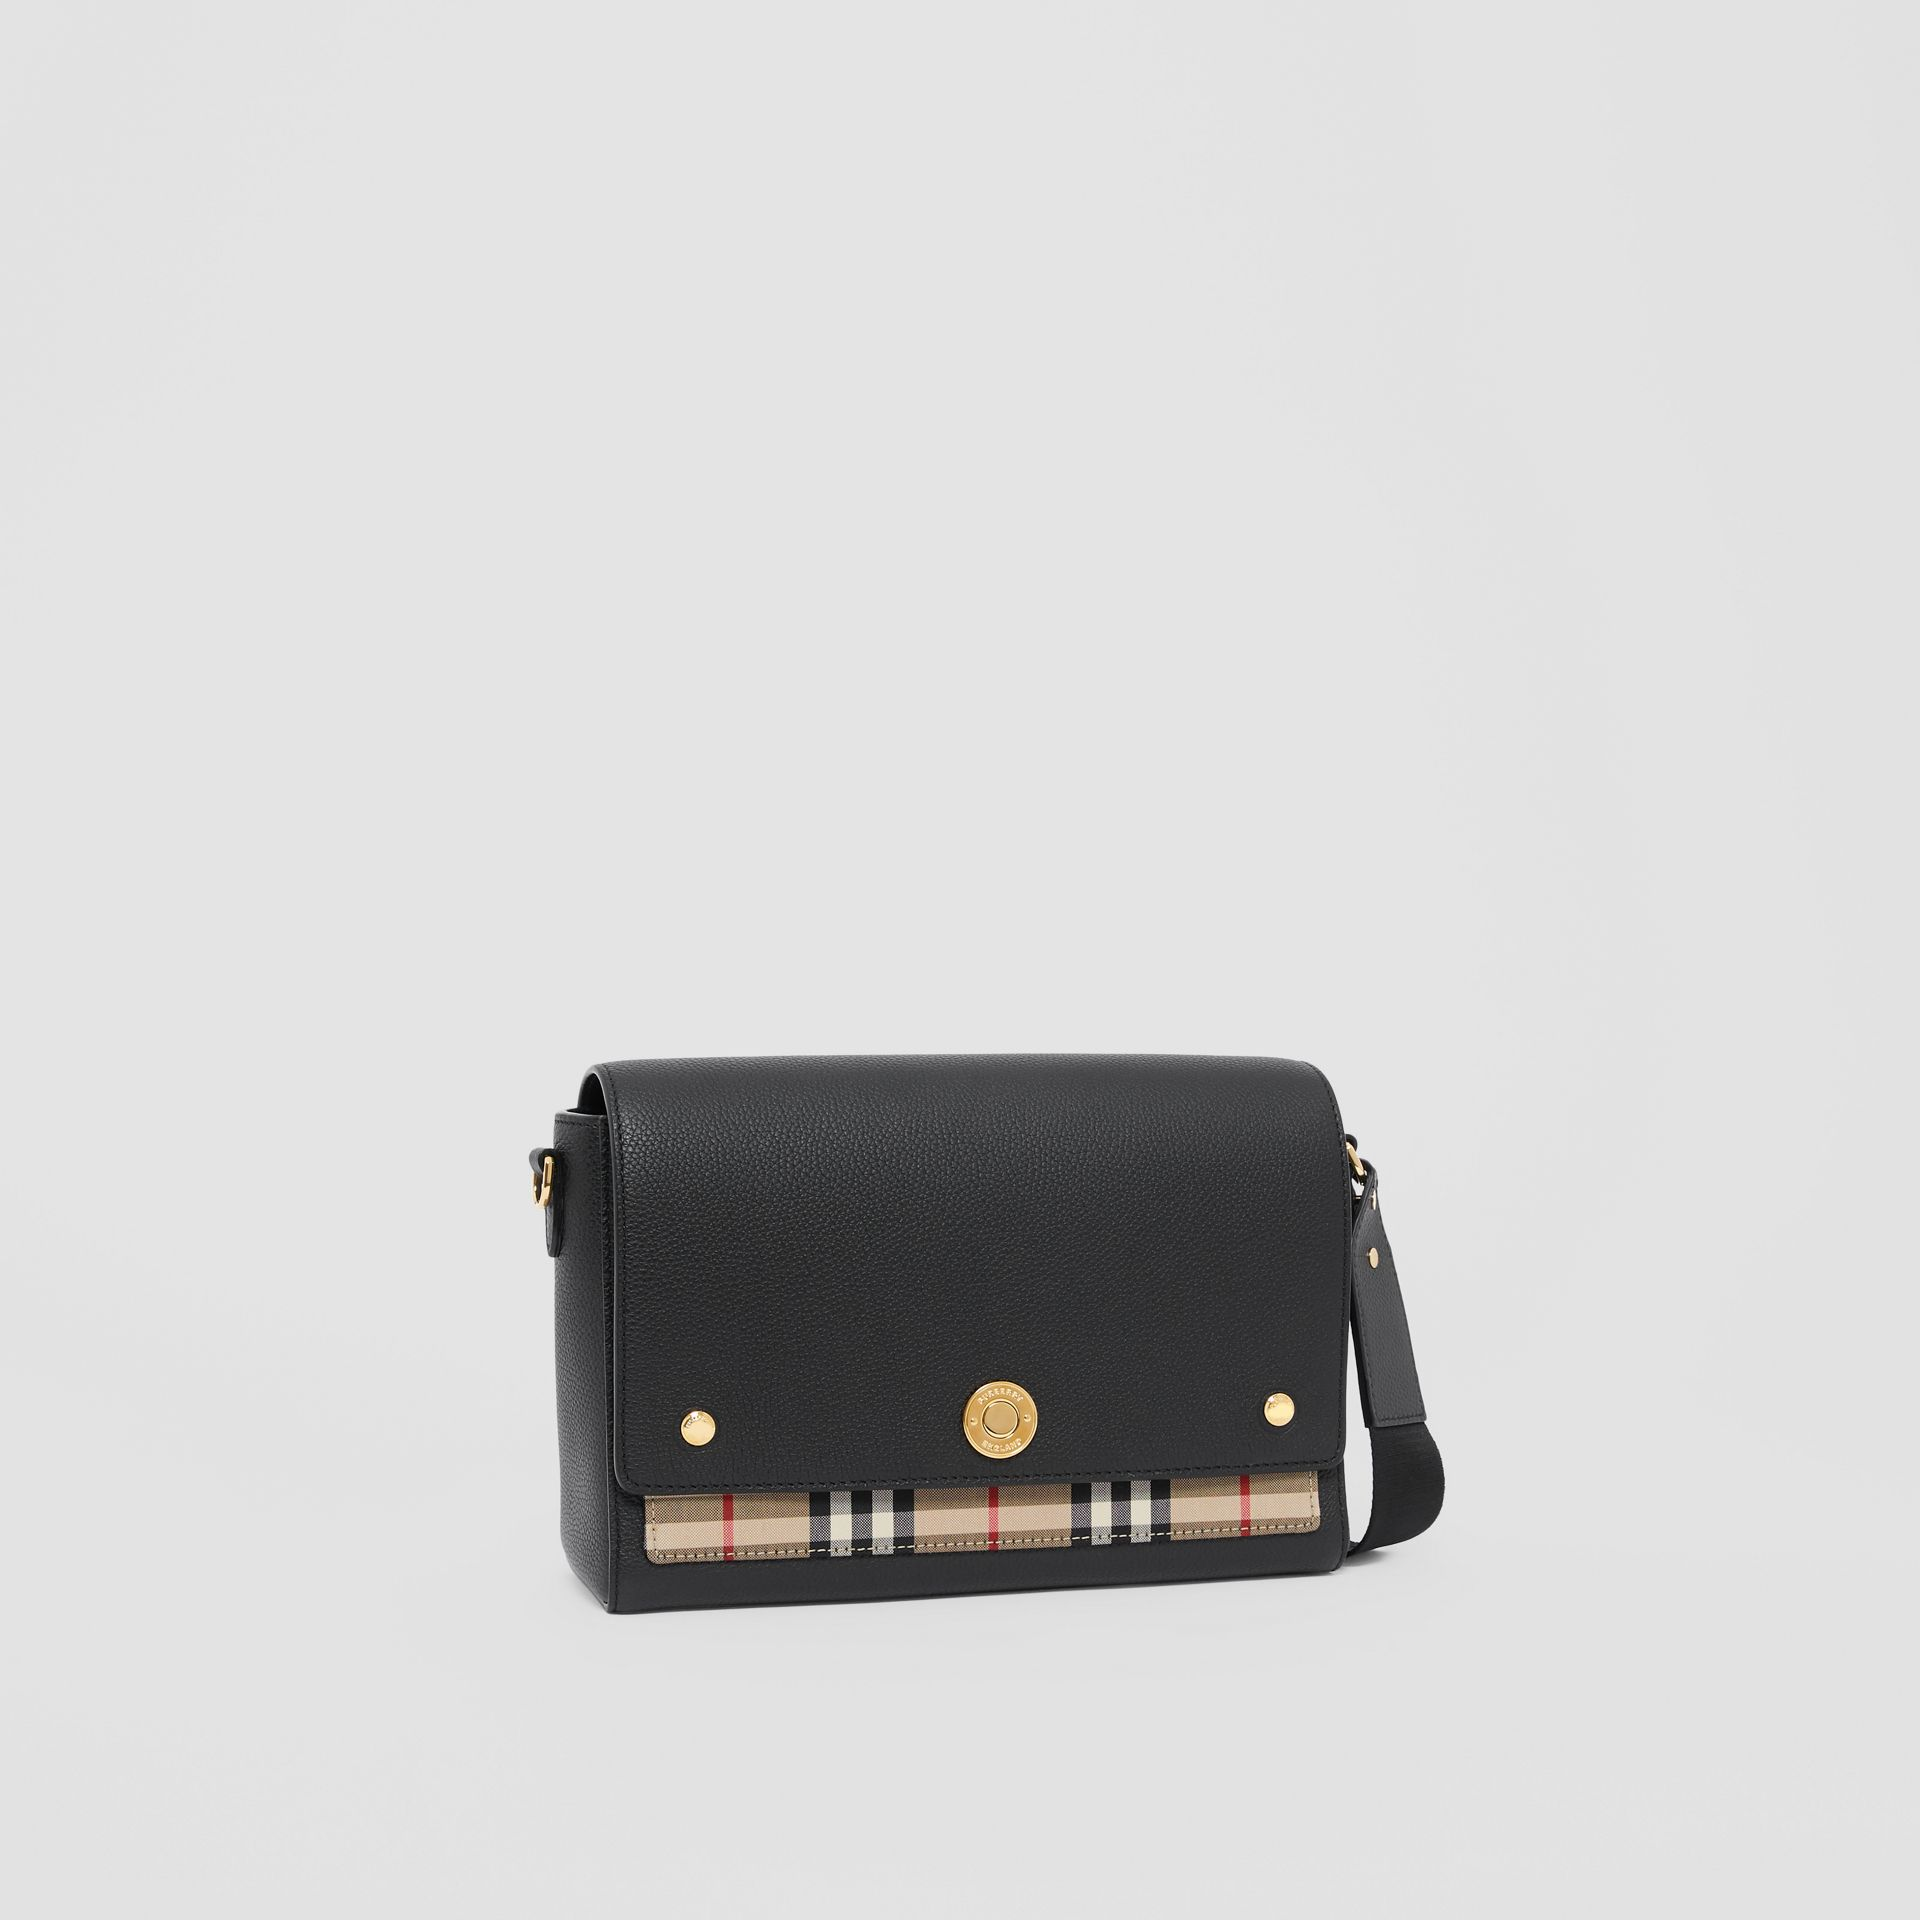 Leather and Vintage Check Note Crossbody Bag in Black - Women | Burberry United Kingdom - gallery image 6